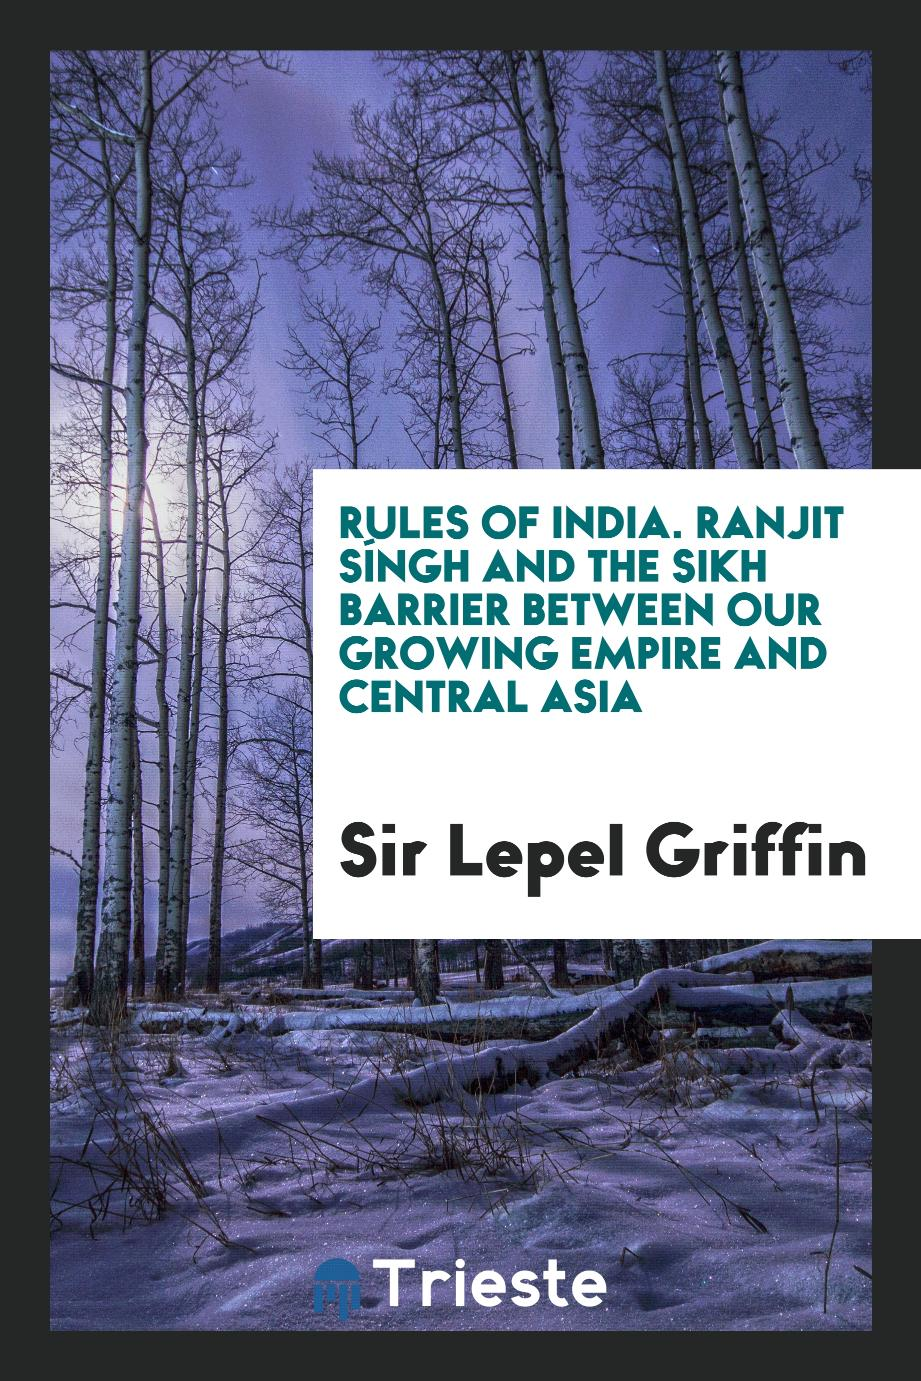 Rules of India. Ranjit Síngh and the Sikh Barrier between Our Growing Empire and Central Asia